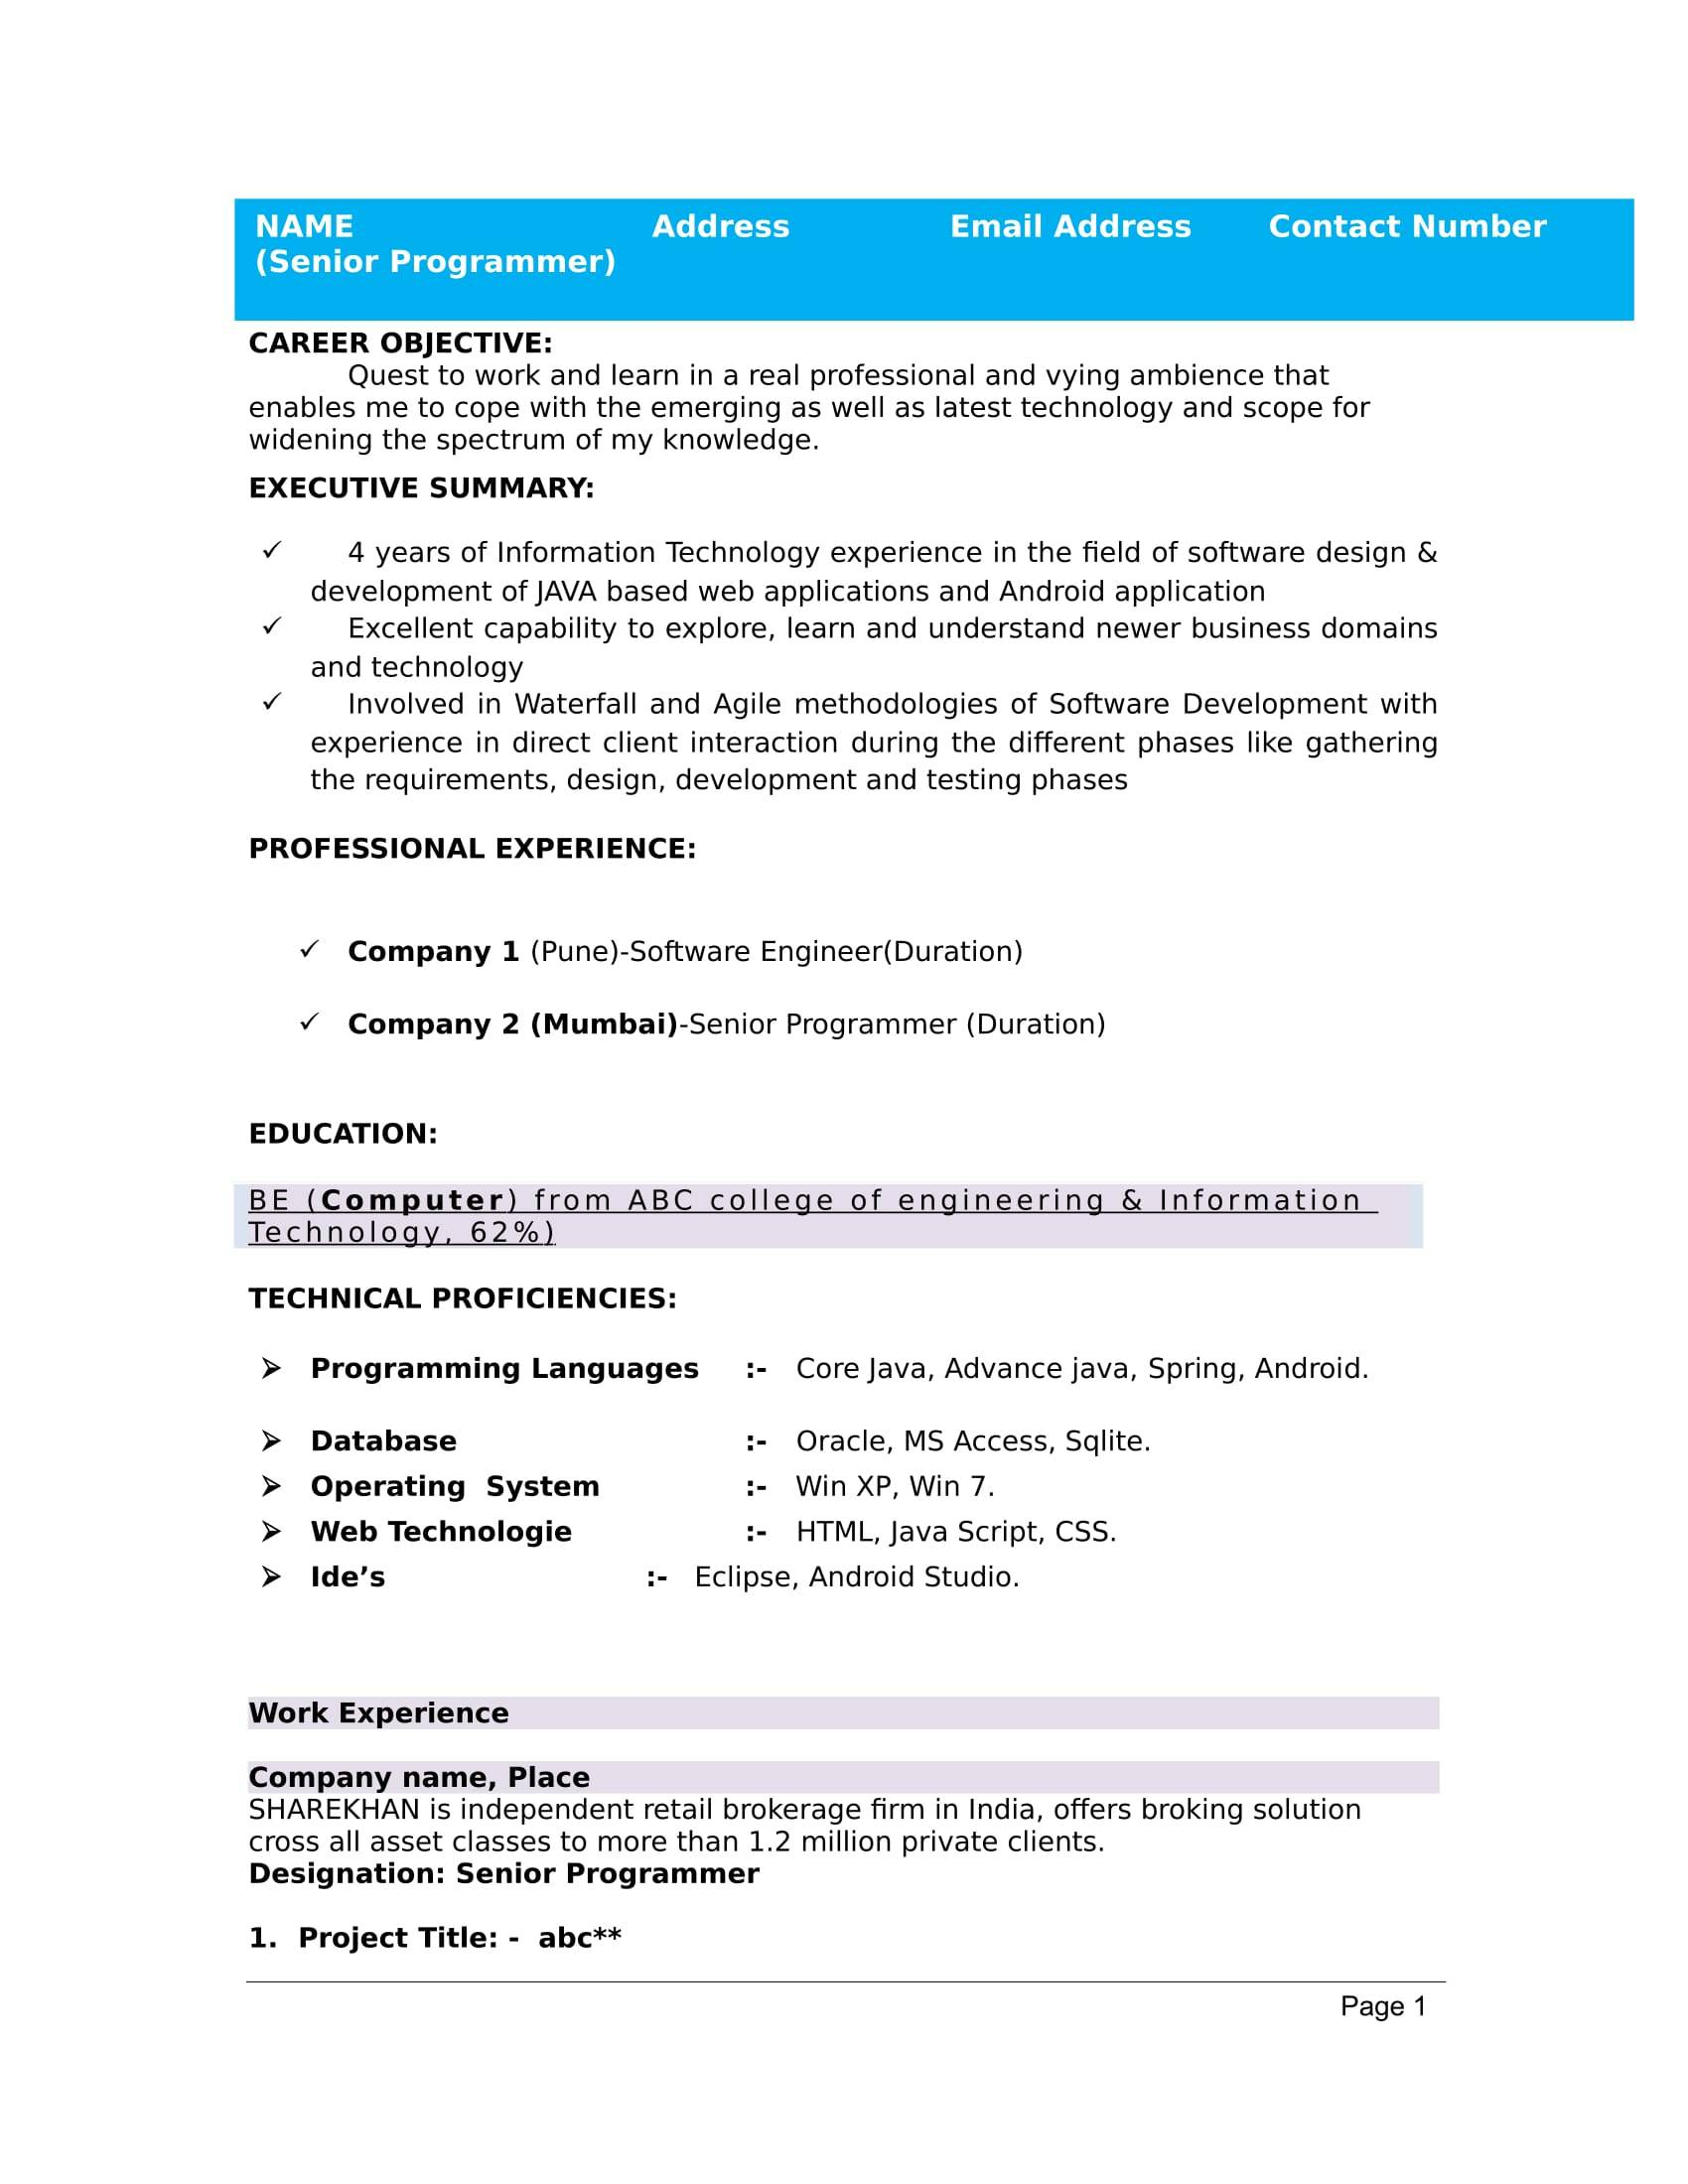 Resume Templates For Freshers Free Download